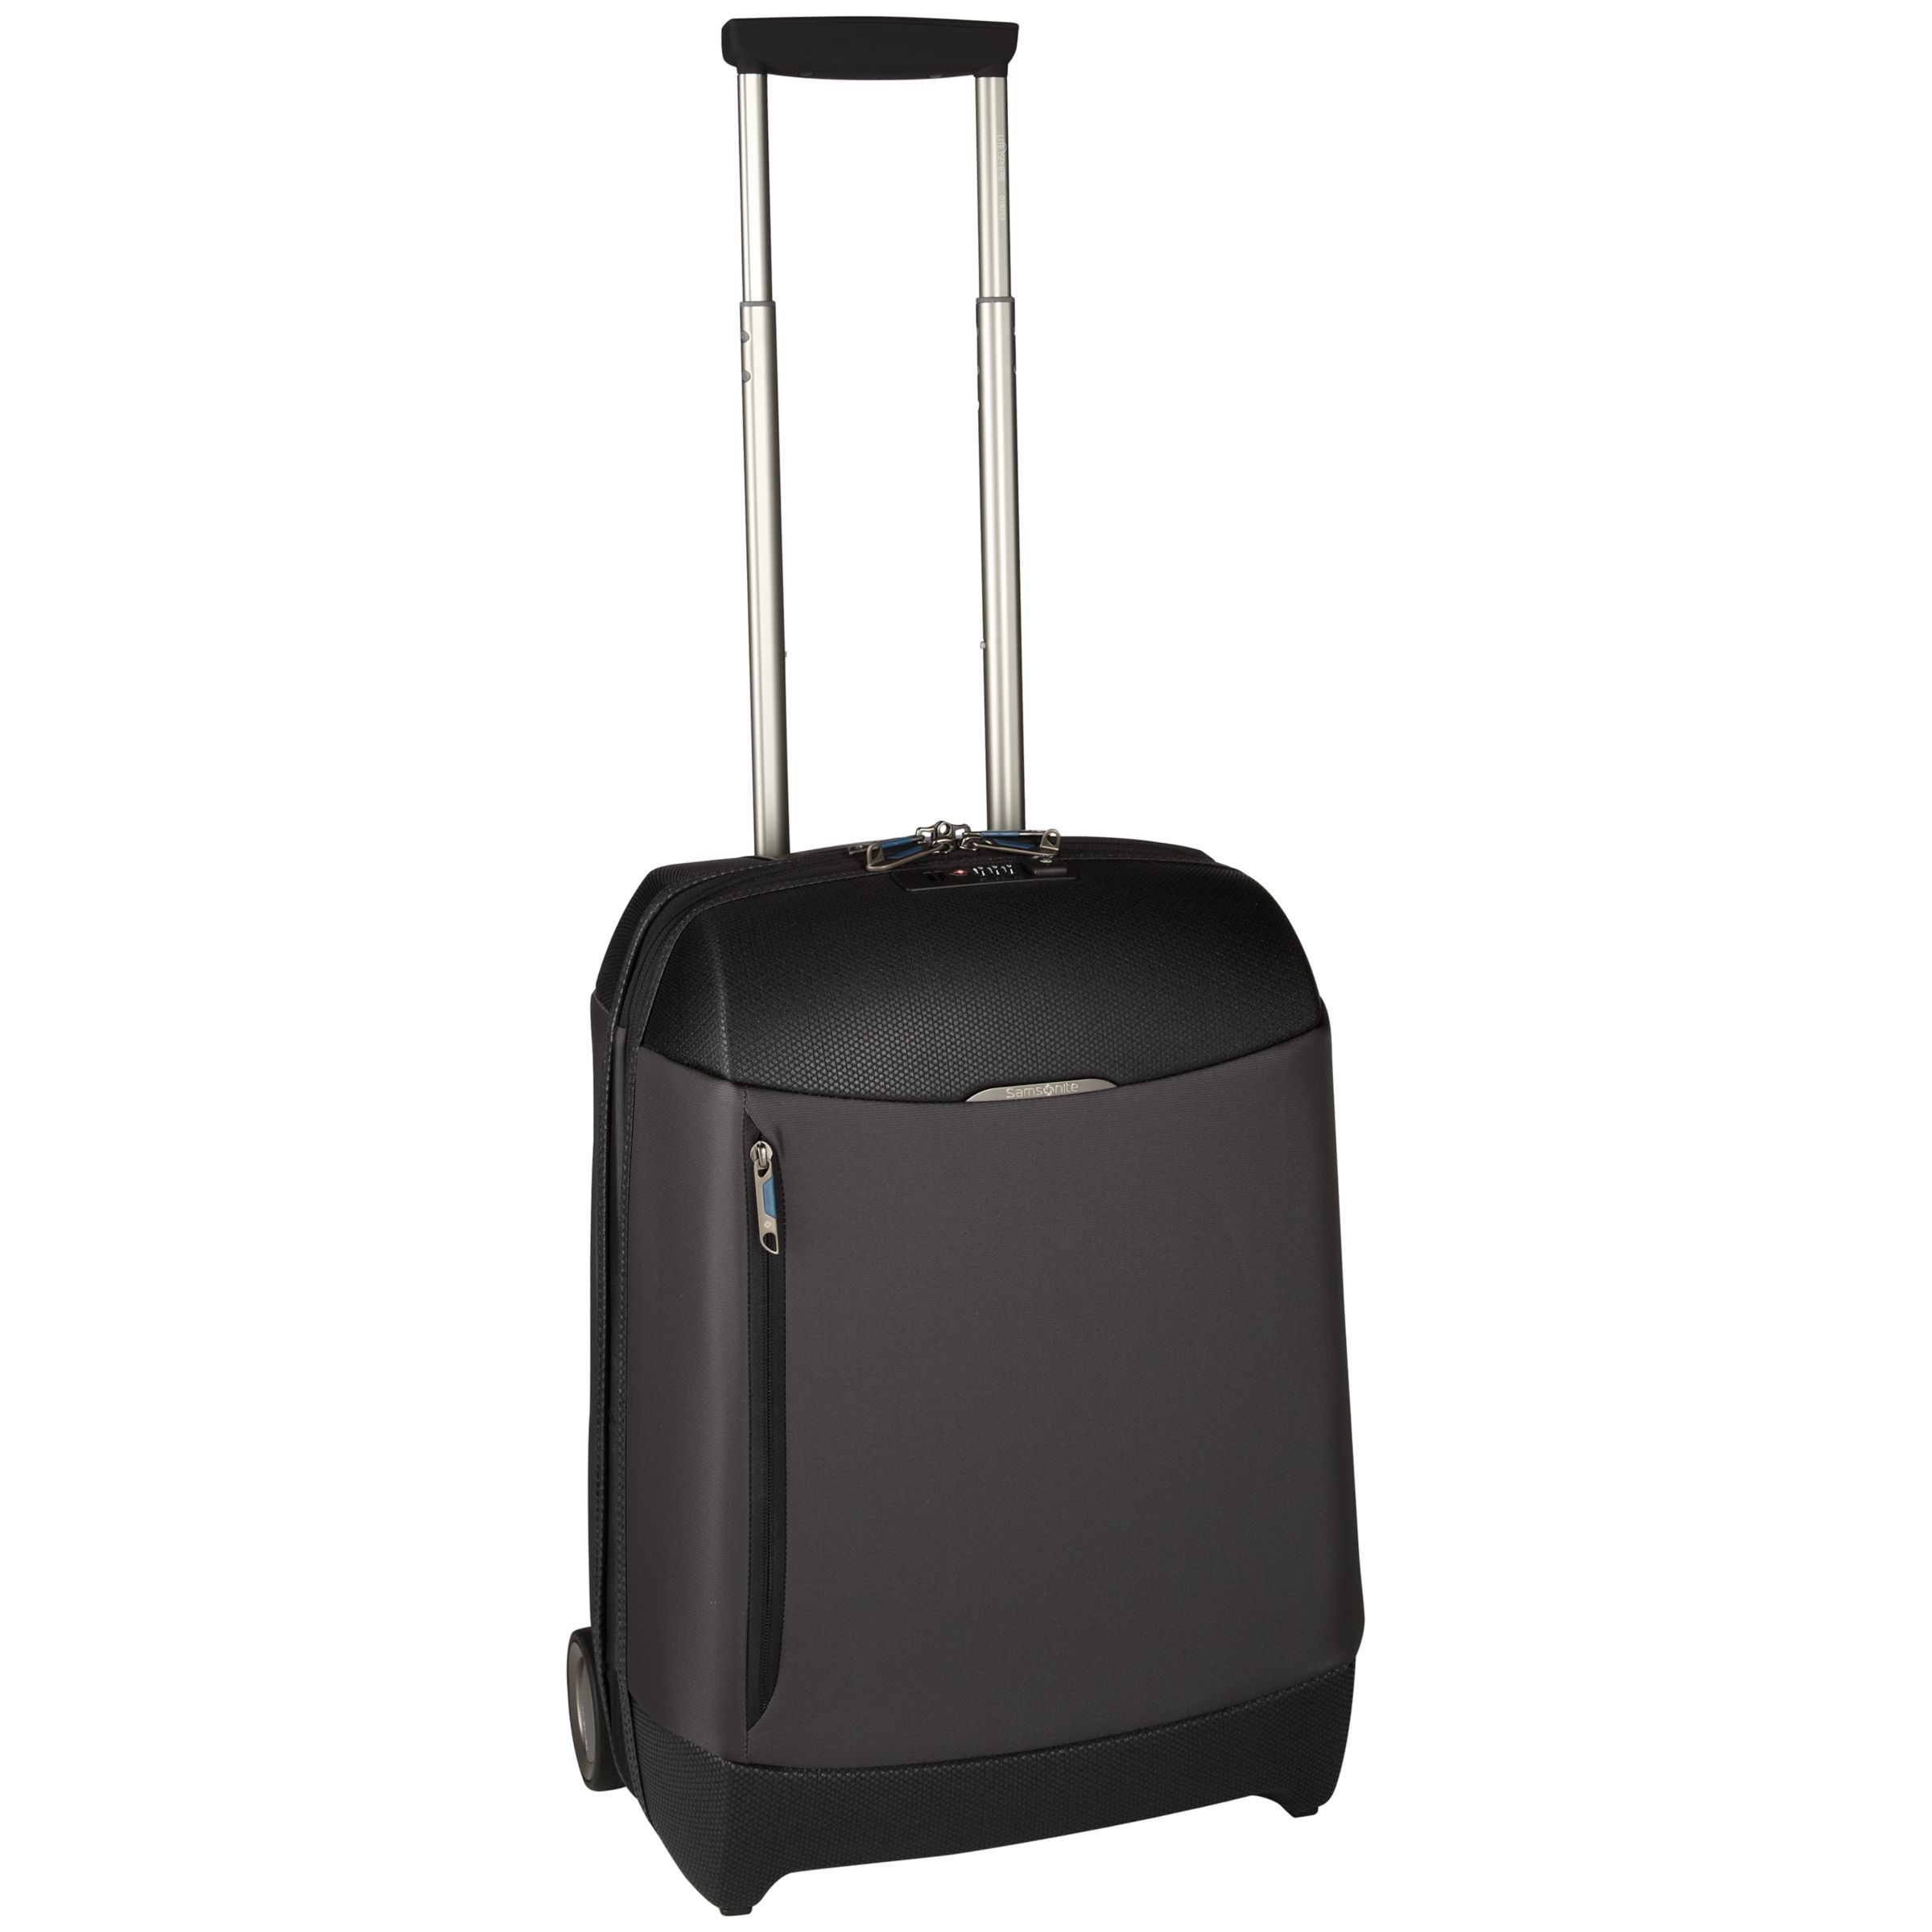 Samsonite Litesphere Mobile Office, Black